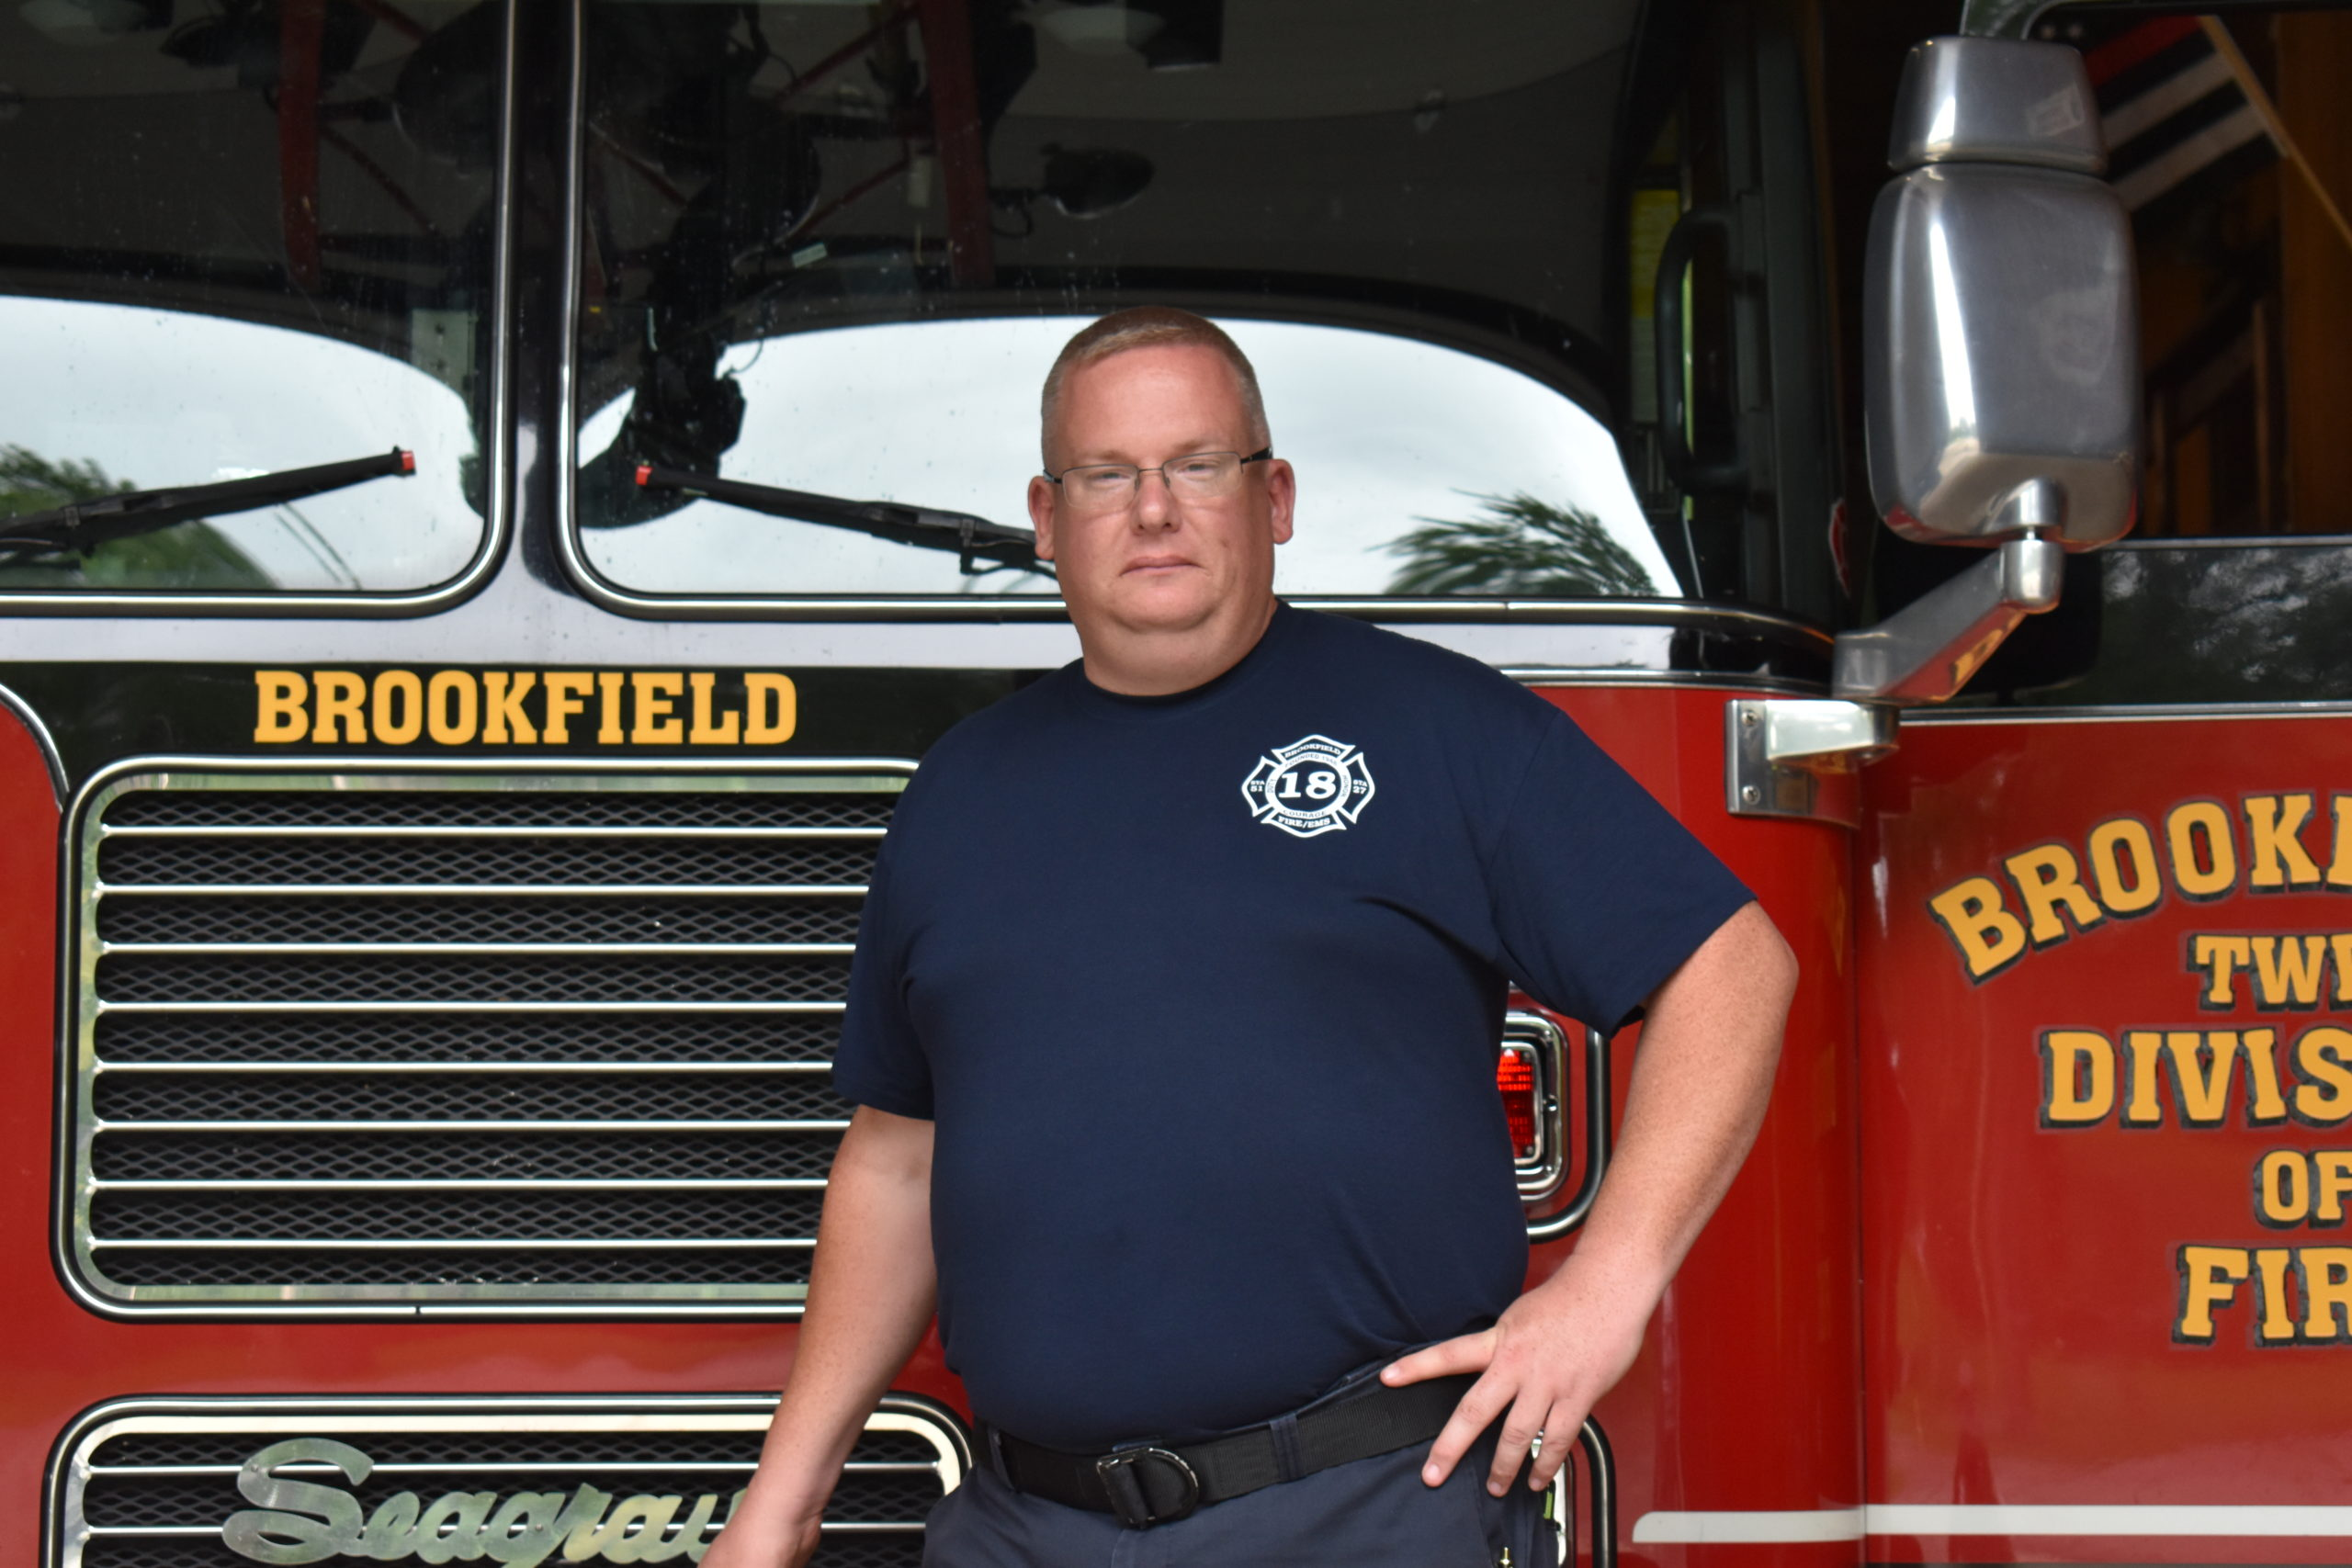 Brookfield Fire Capt. James Williamson